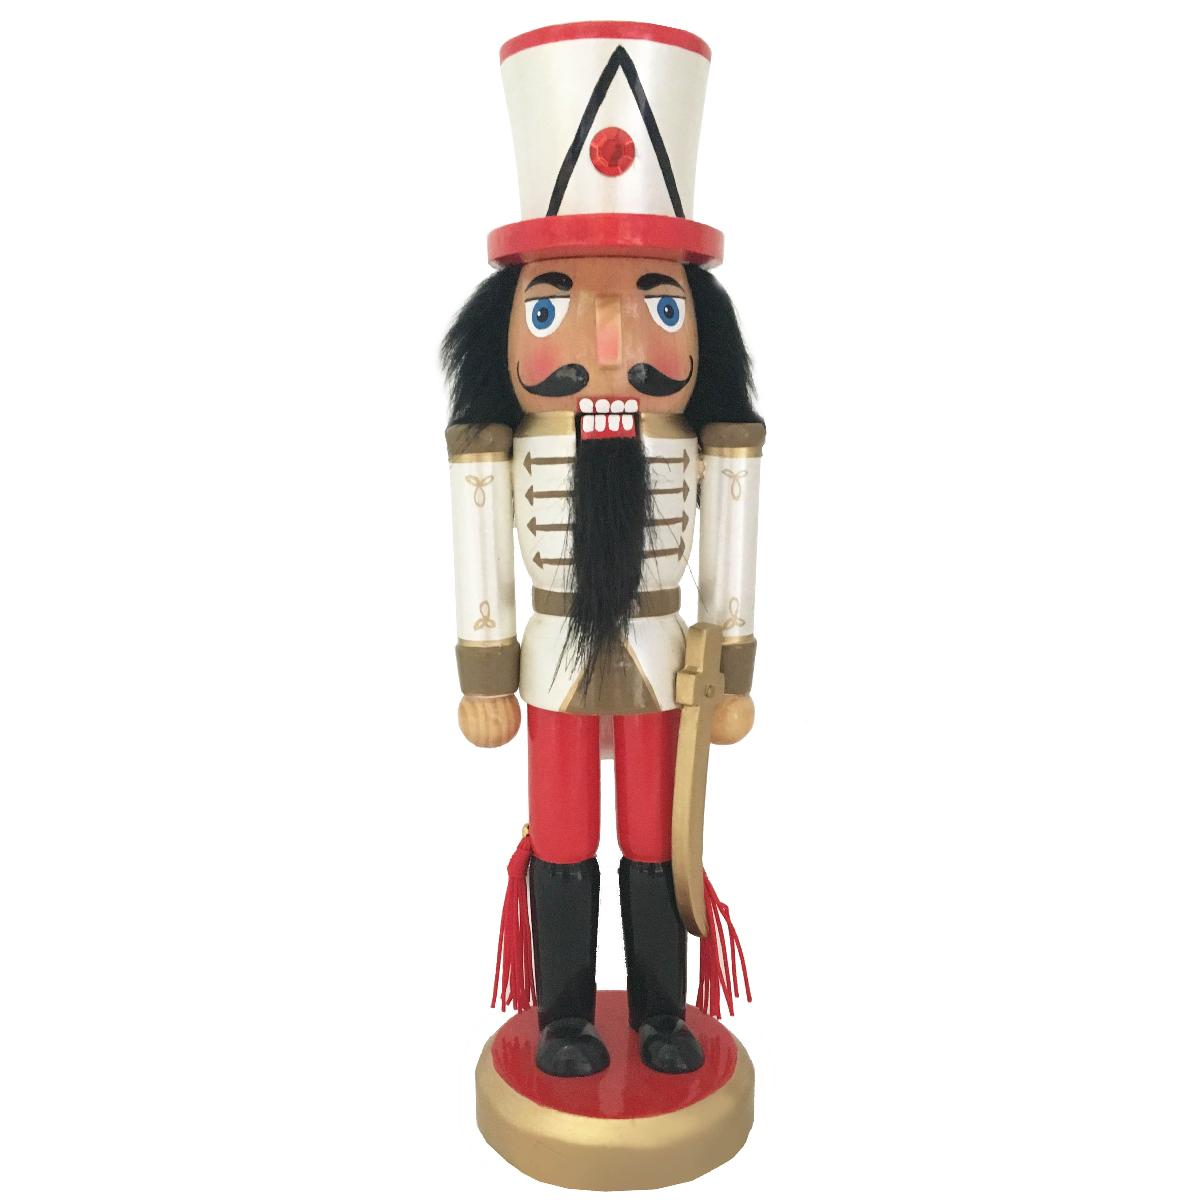 Soldier Nutcracker Red White Gold and Sword 10 inch